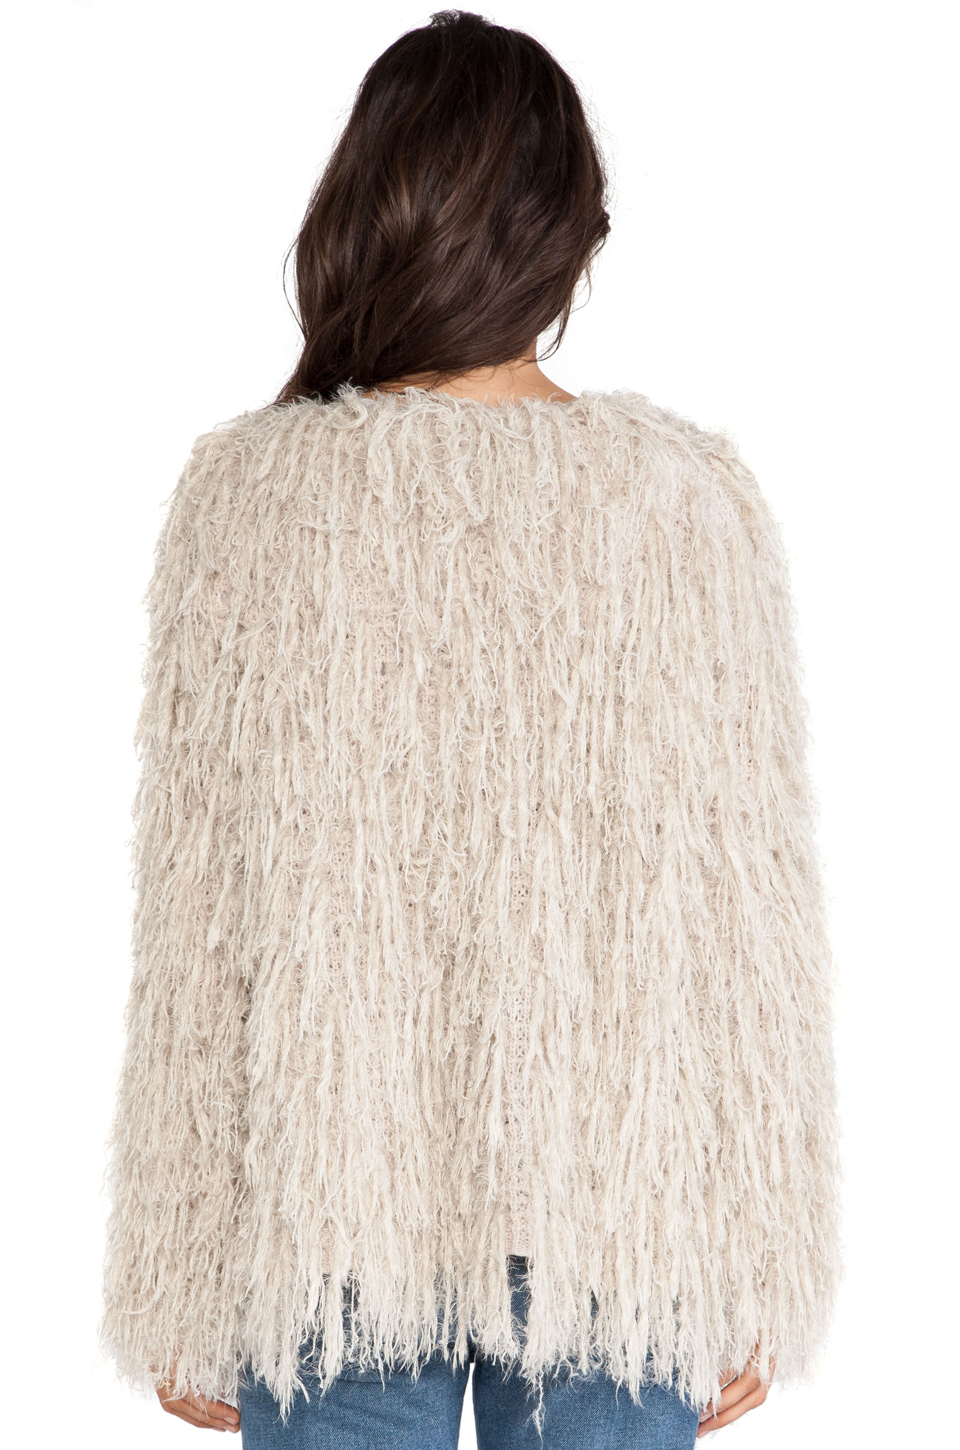 827300c2b65919 Free People Faithful Shaggy Cardigan in Sand from ...